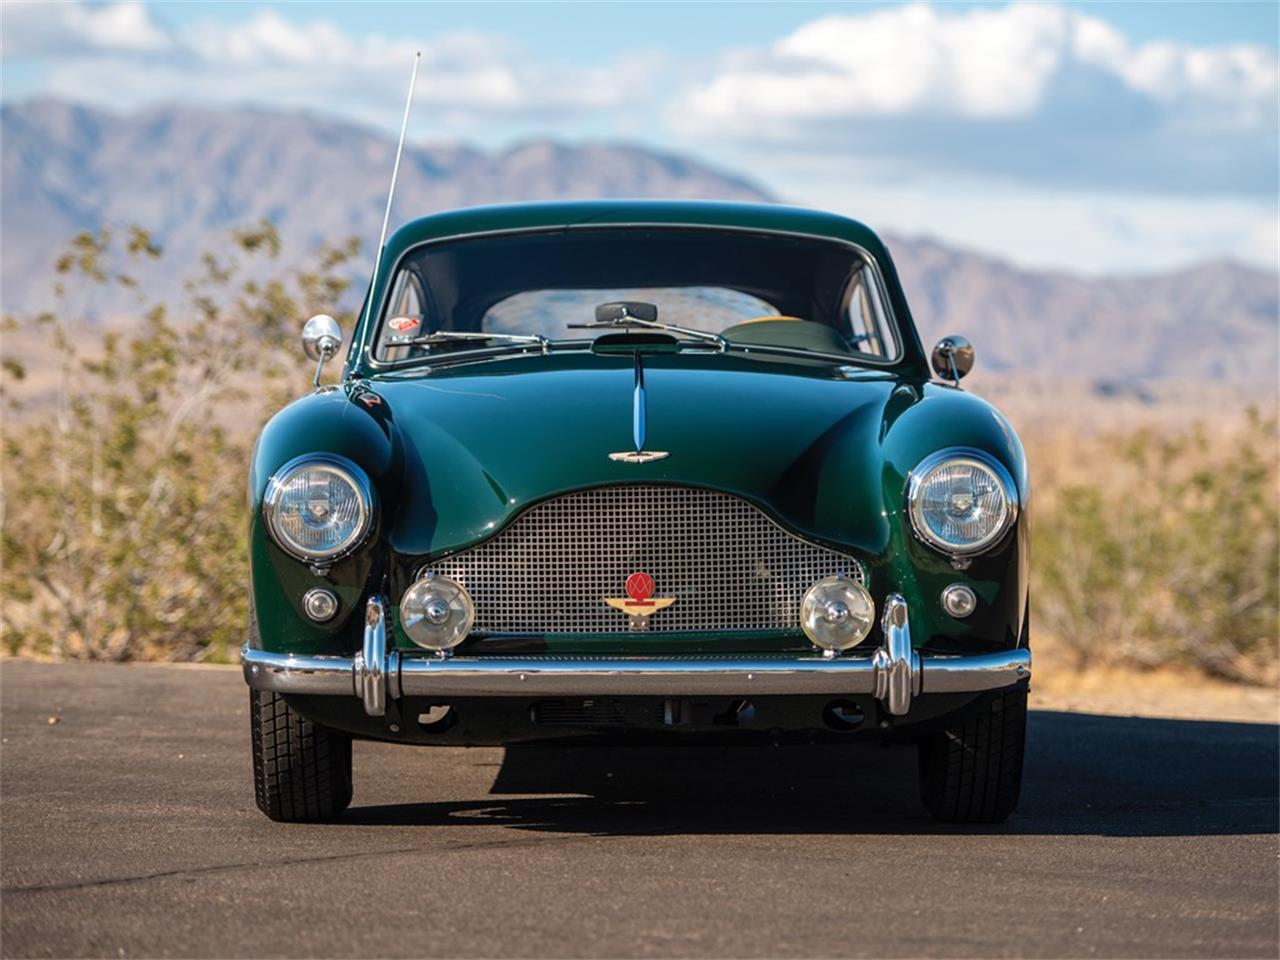 Large Picture of 1957 Aston Martin DB 2/4 MKIII located in Monterey California Auction Vehicle - Q4GZ